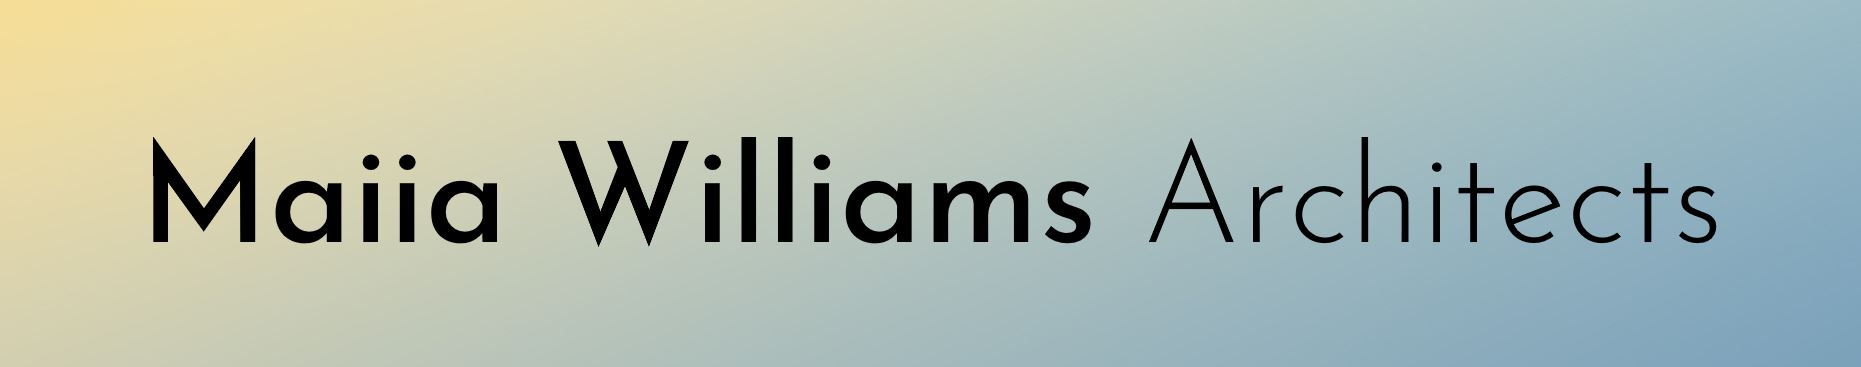 Maiia Williams Architect Molesey Londonand PassivHaus Designer